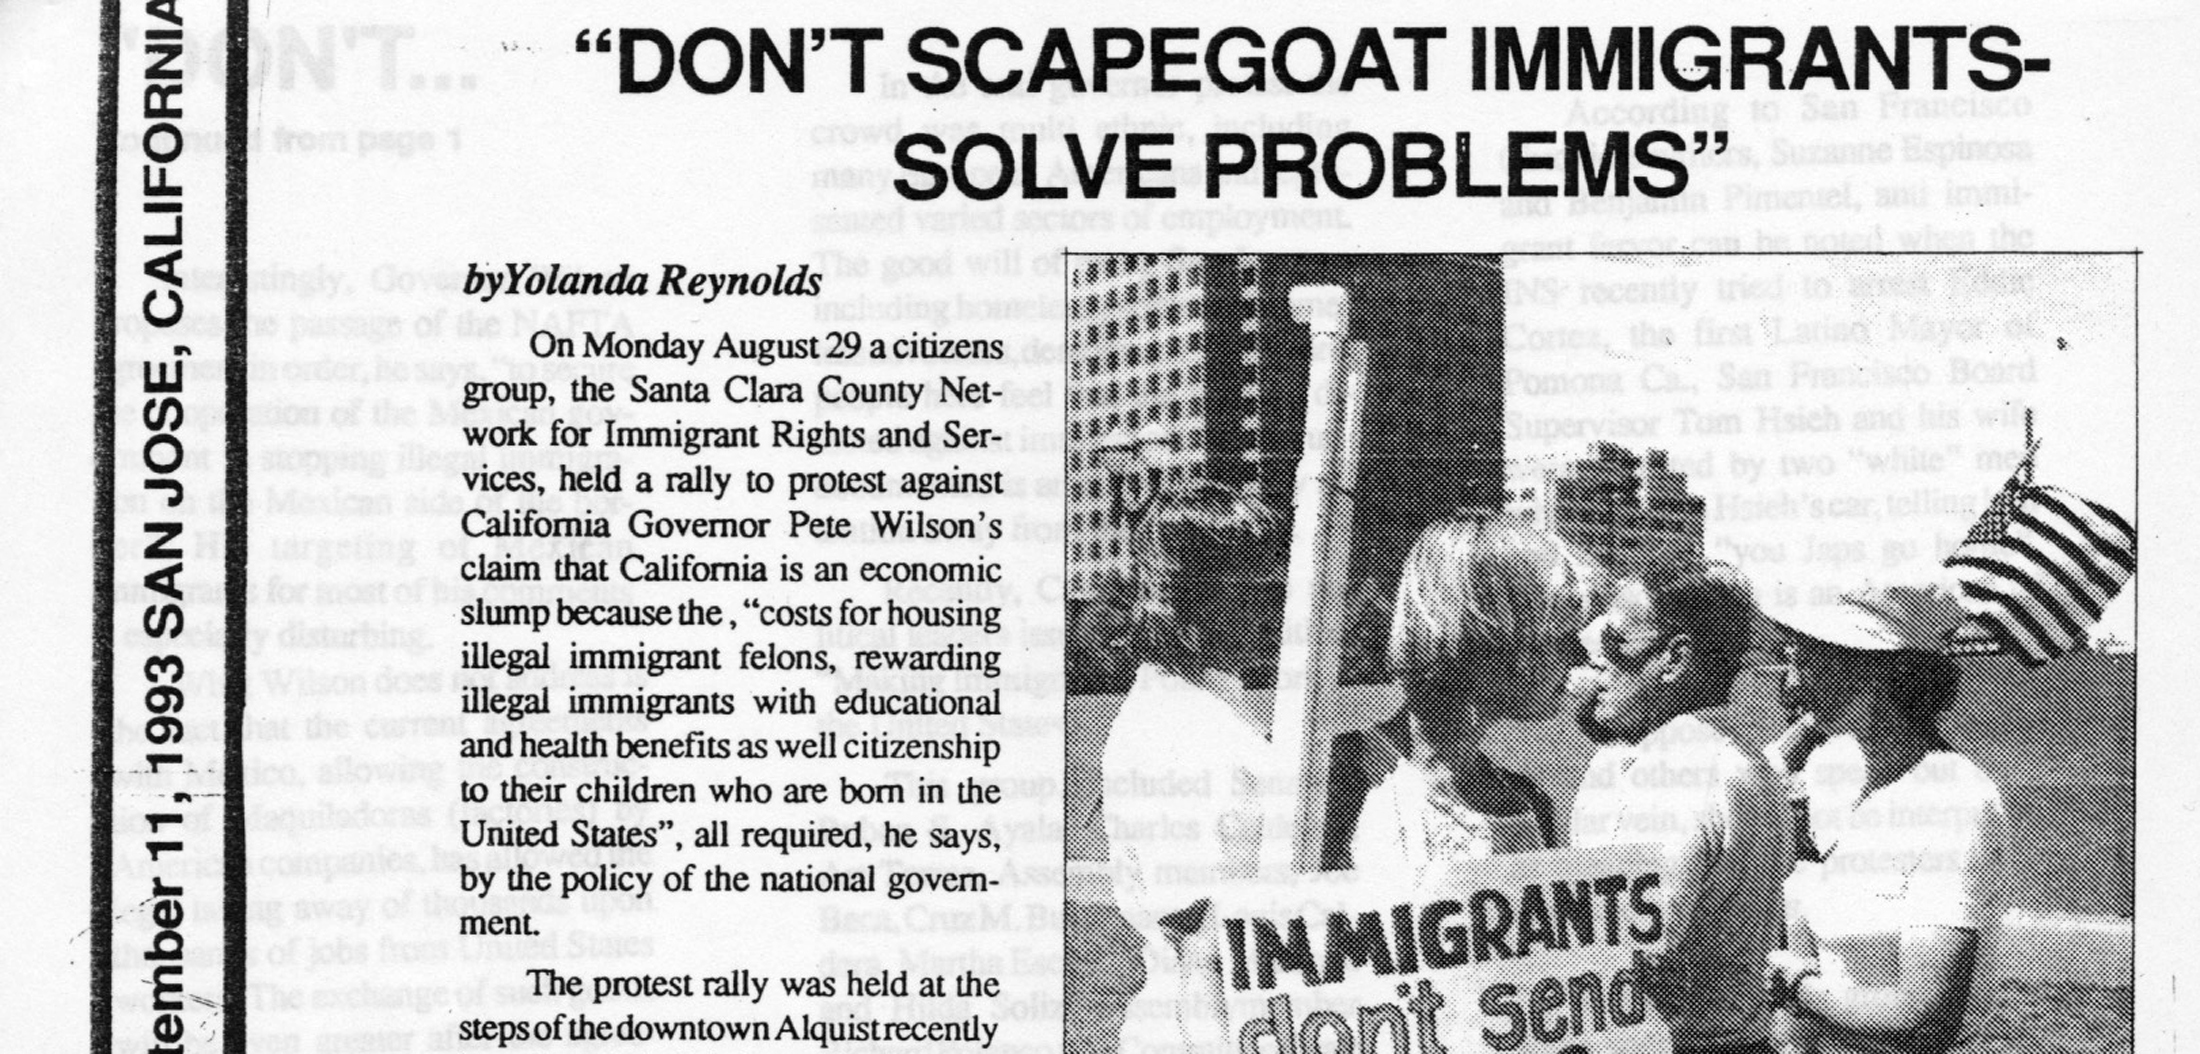 the immigrant problem in the us According to the pew research center, the number of illegal immigrants in the united states now exceeds 11 millionwithout an effective route to citizenship, american breeds a culture of national security problems because there is no option for these individuals other than those provided by people who skirt the law and often take advantage.